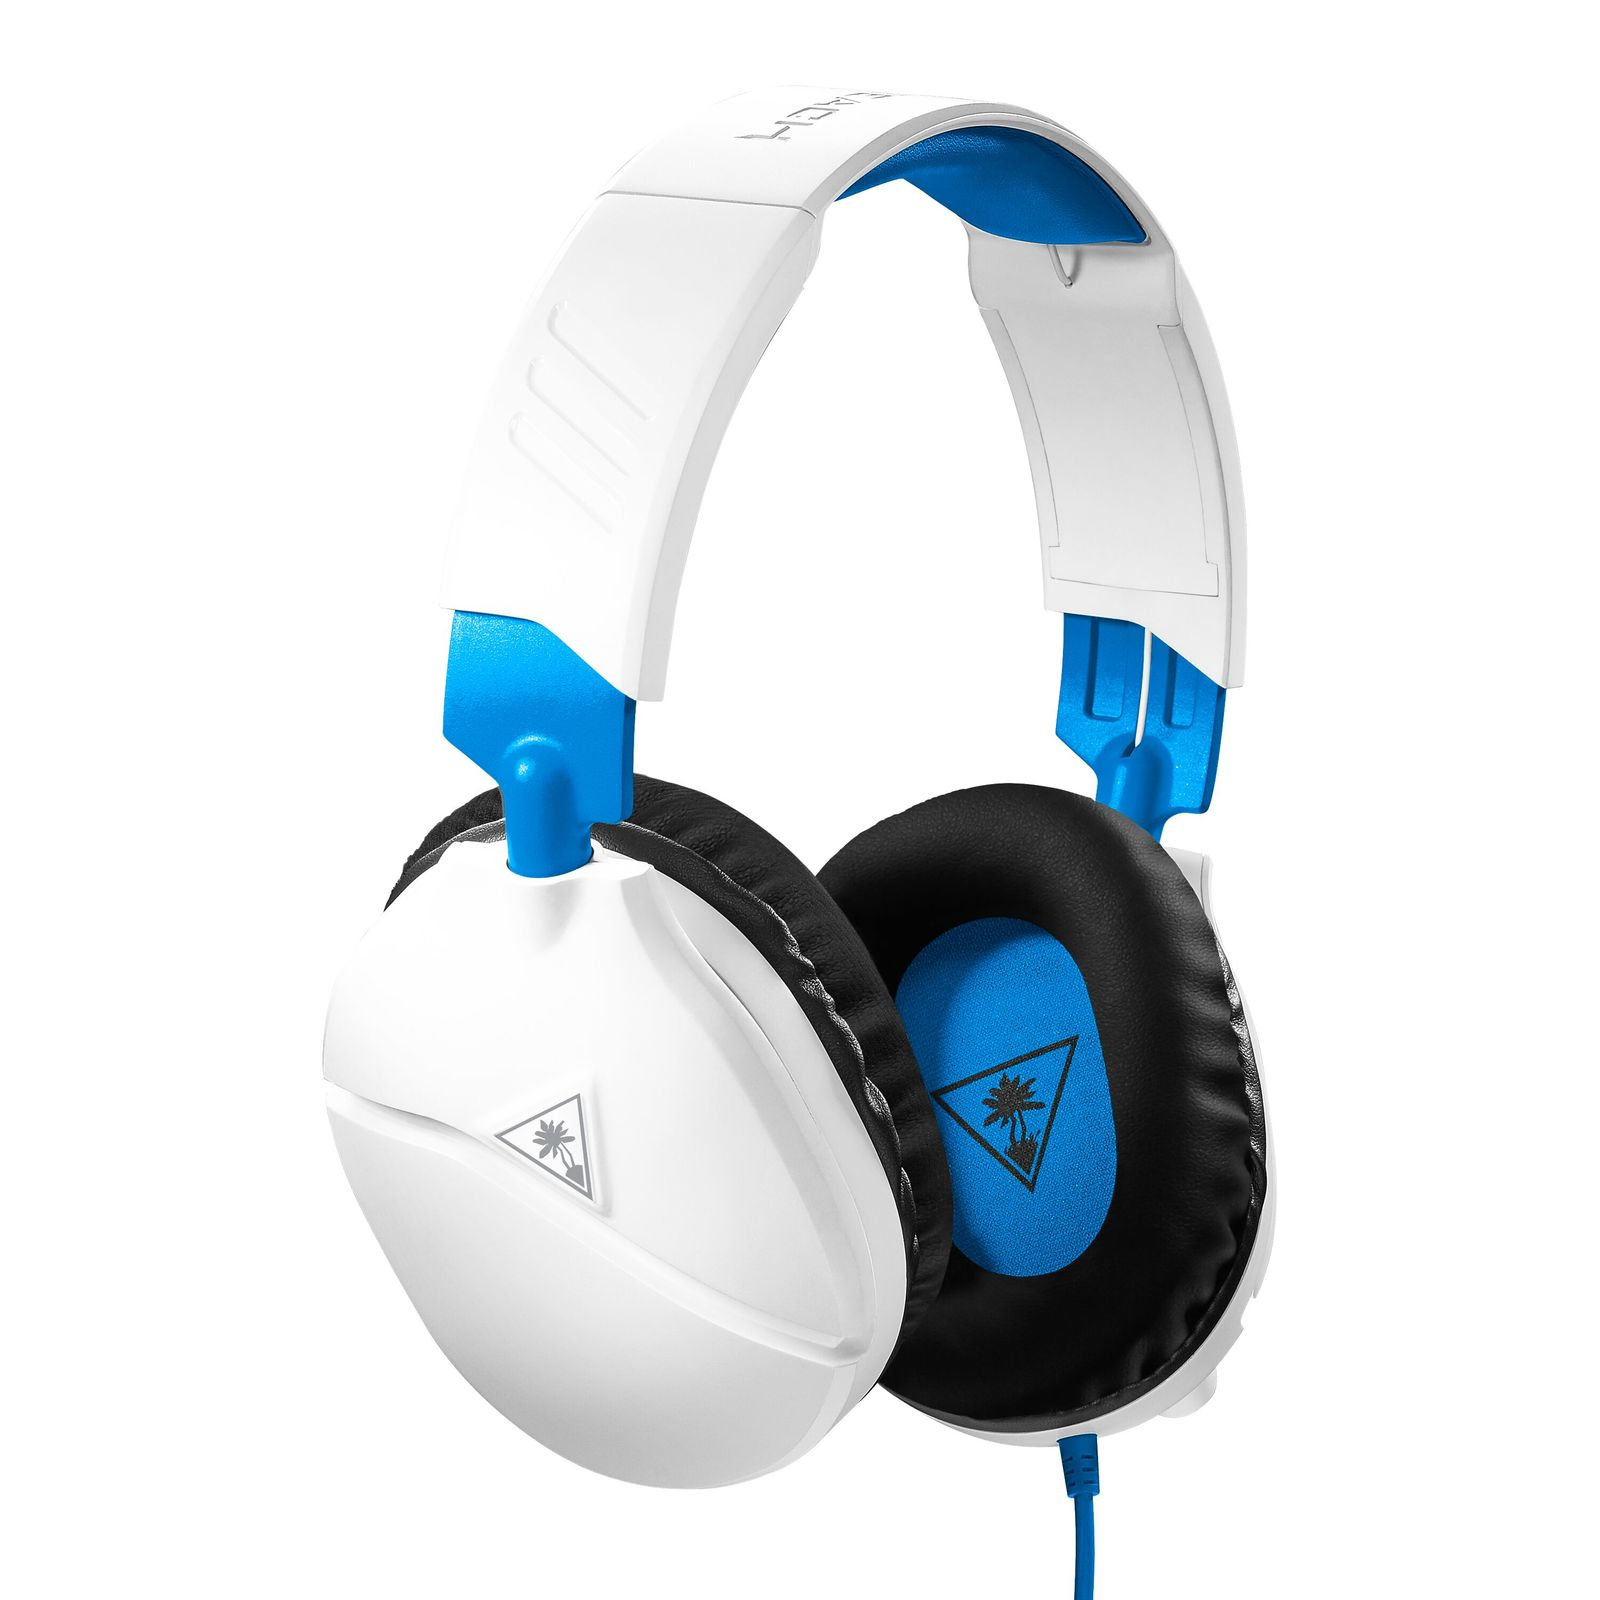 Turtle Beach Ear Force Recon 70P Stereo Gaming Headset (White) for PS4 image